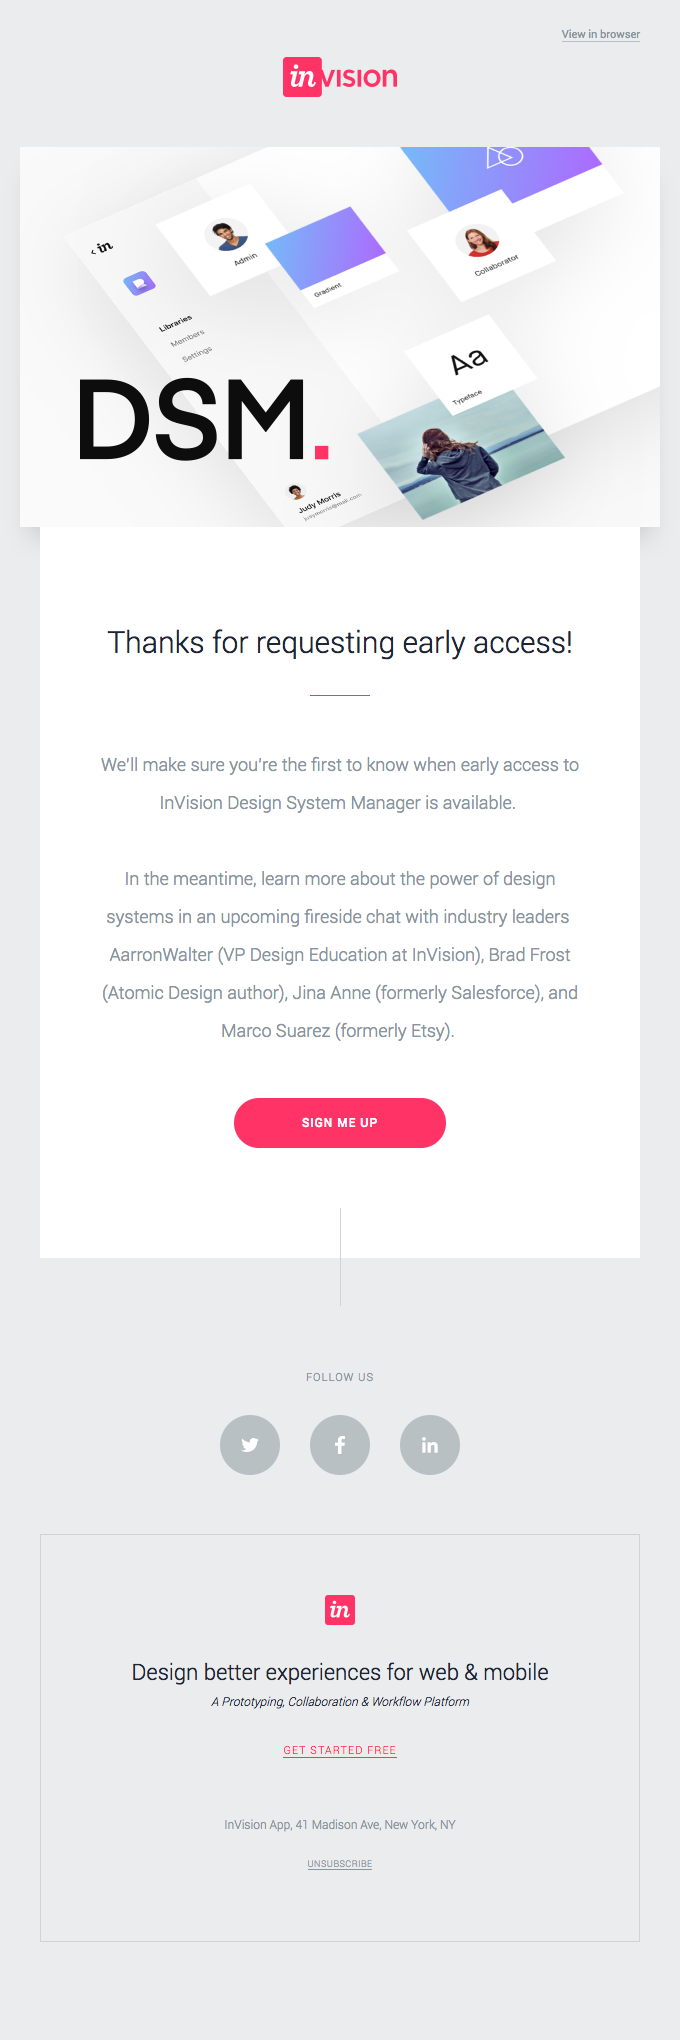 You're first in line for InVision's Design System Manager